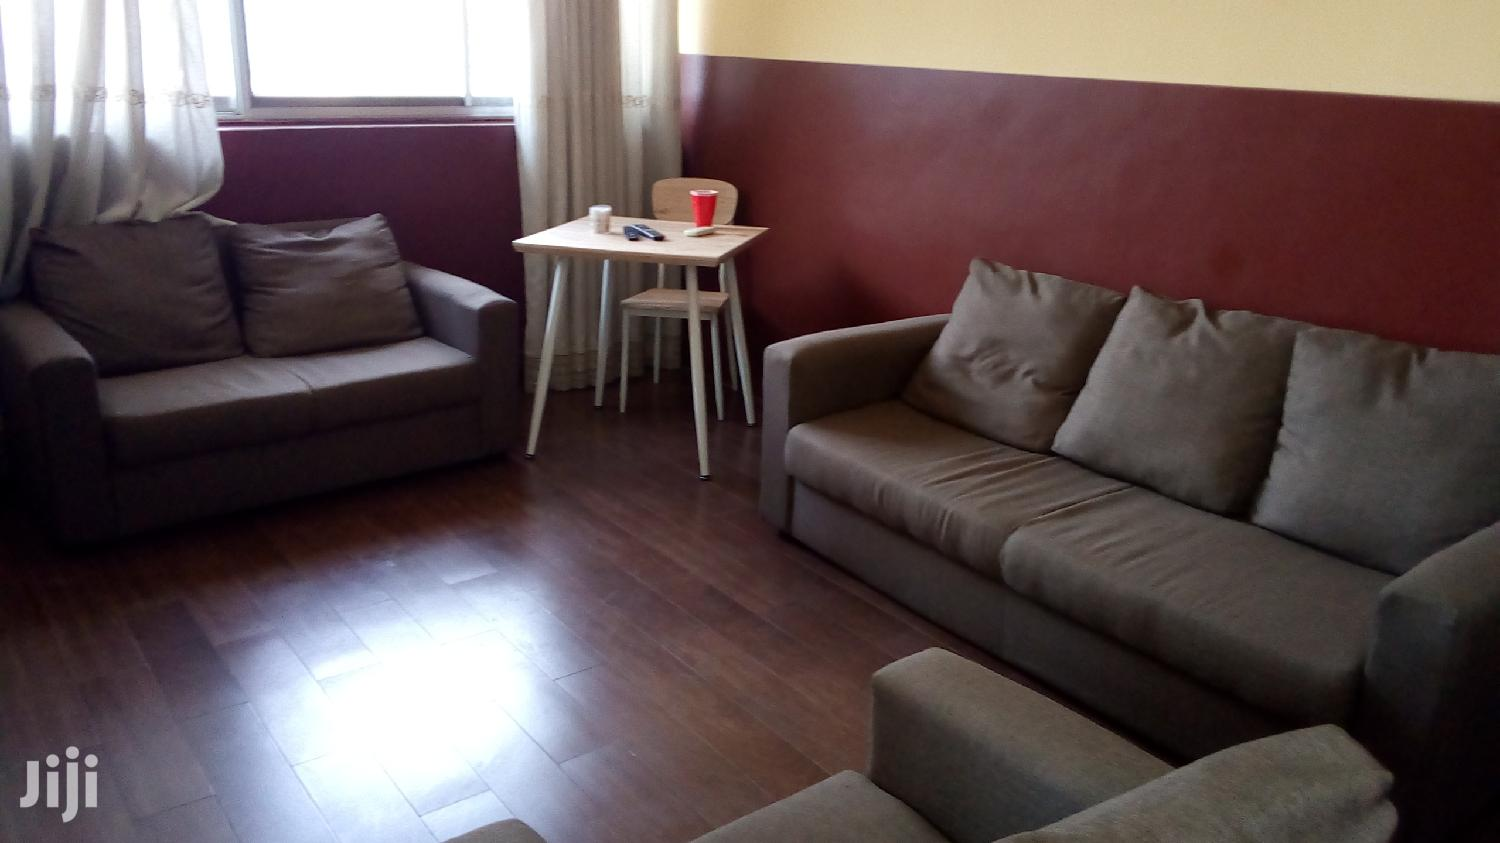 2 Bedroom Furnished Apt For Rent | Houses & Apartments For Rent for sale in Abelemkpe, Greater Accra, Ghana